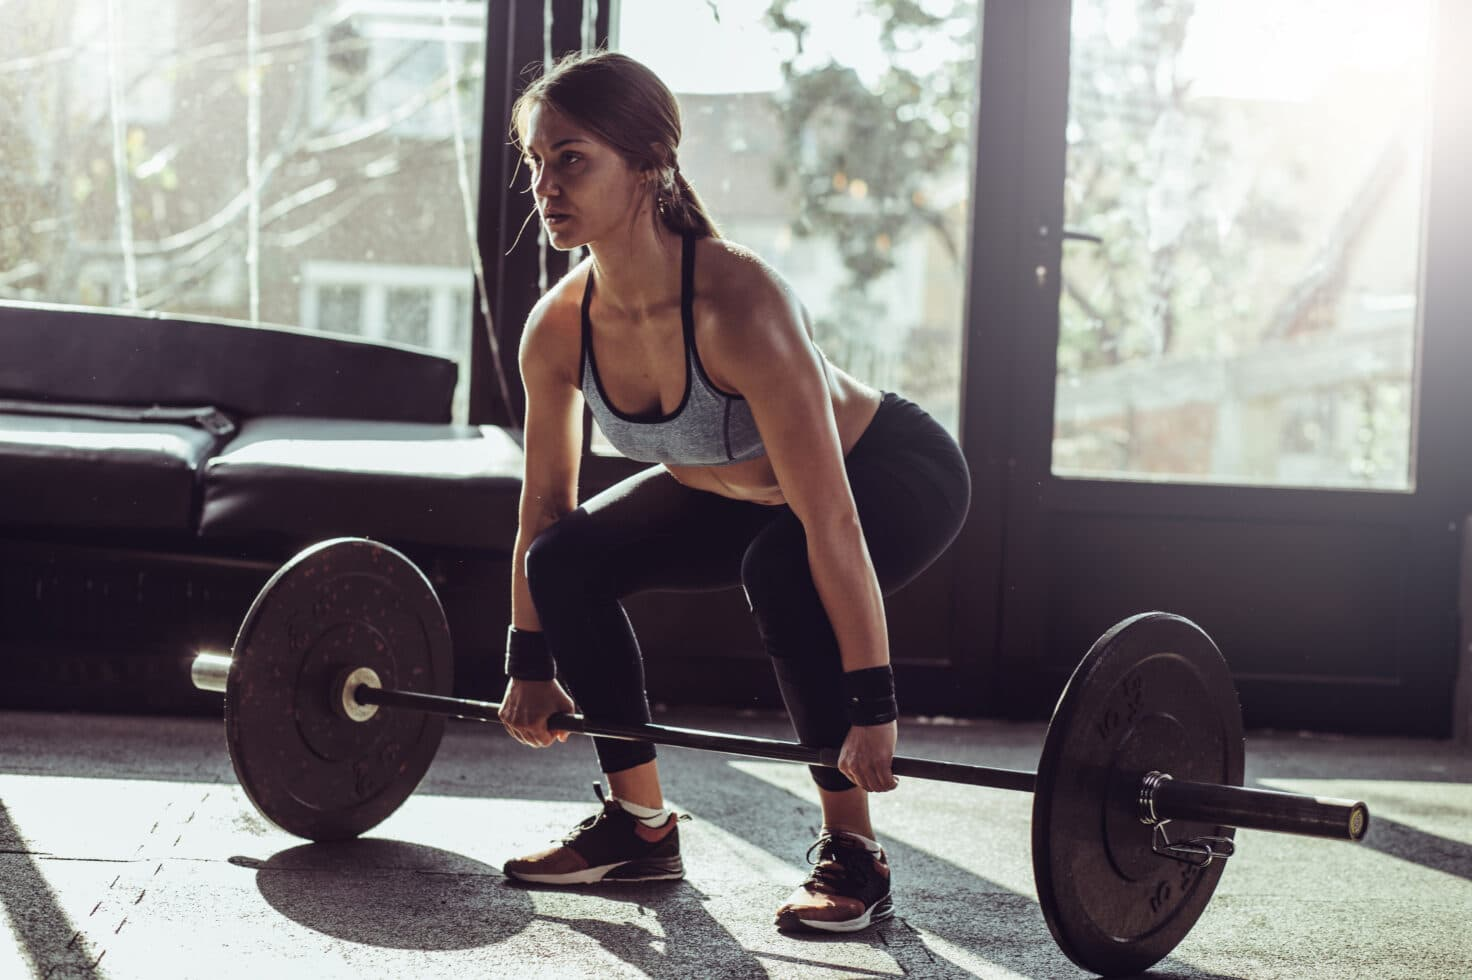 By performing these 9 Booty-Building Basics in your weekly routine, you will be able to build the butt of your dreams!